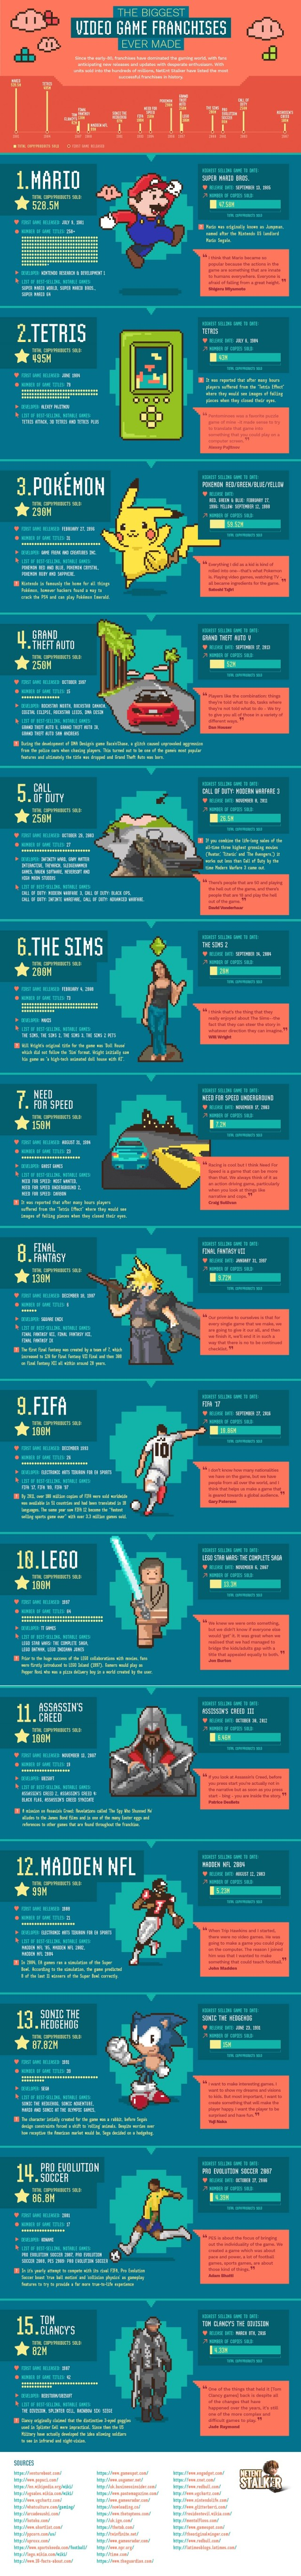 Biggest Video Game Franchises Ever